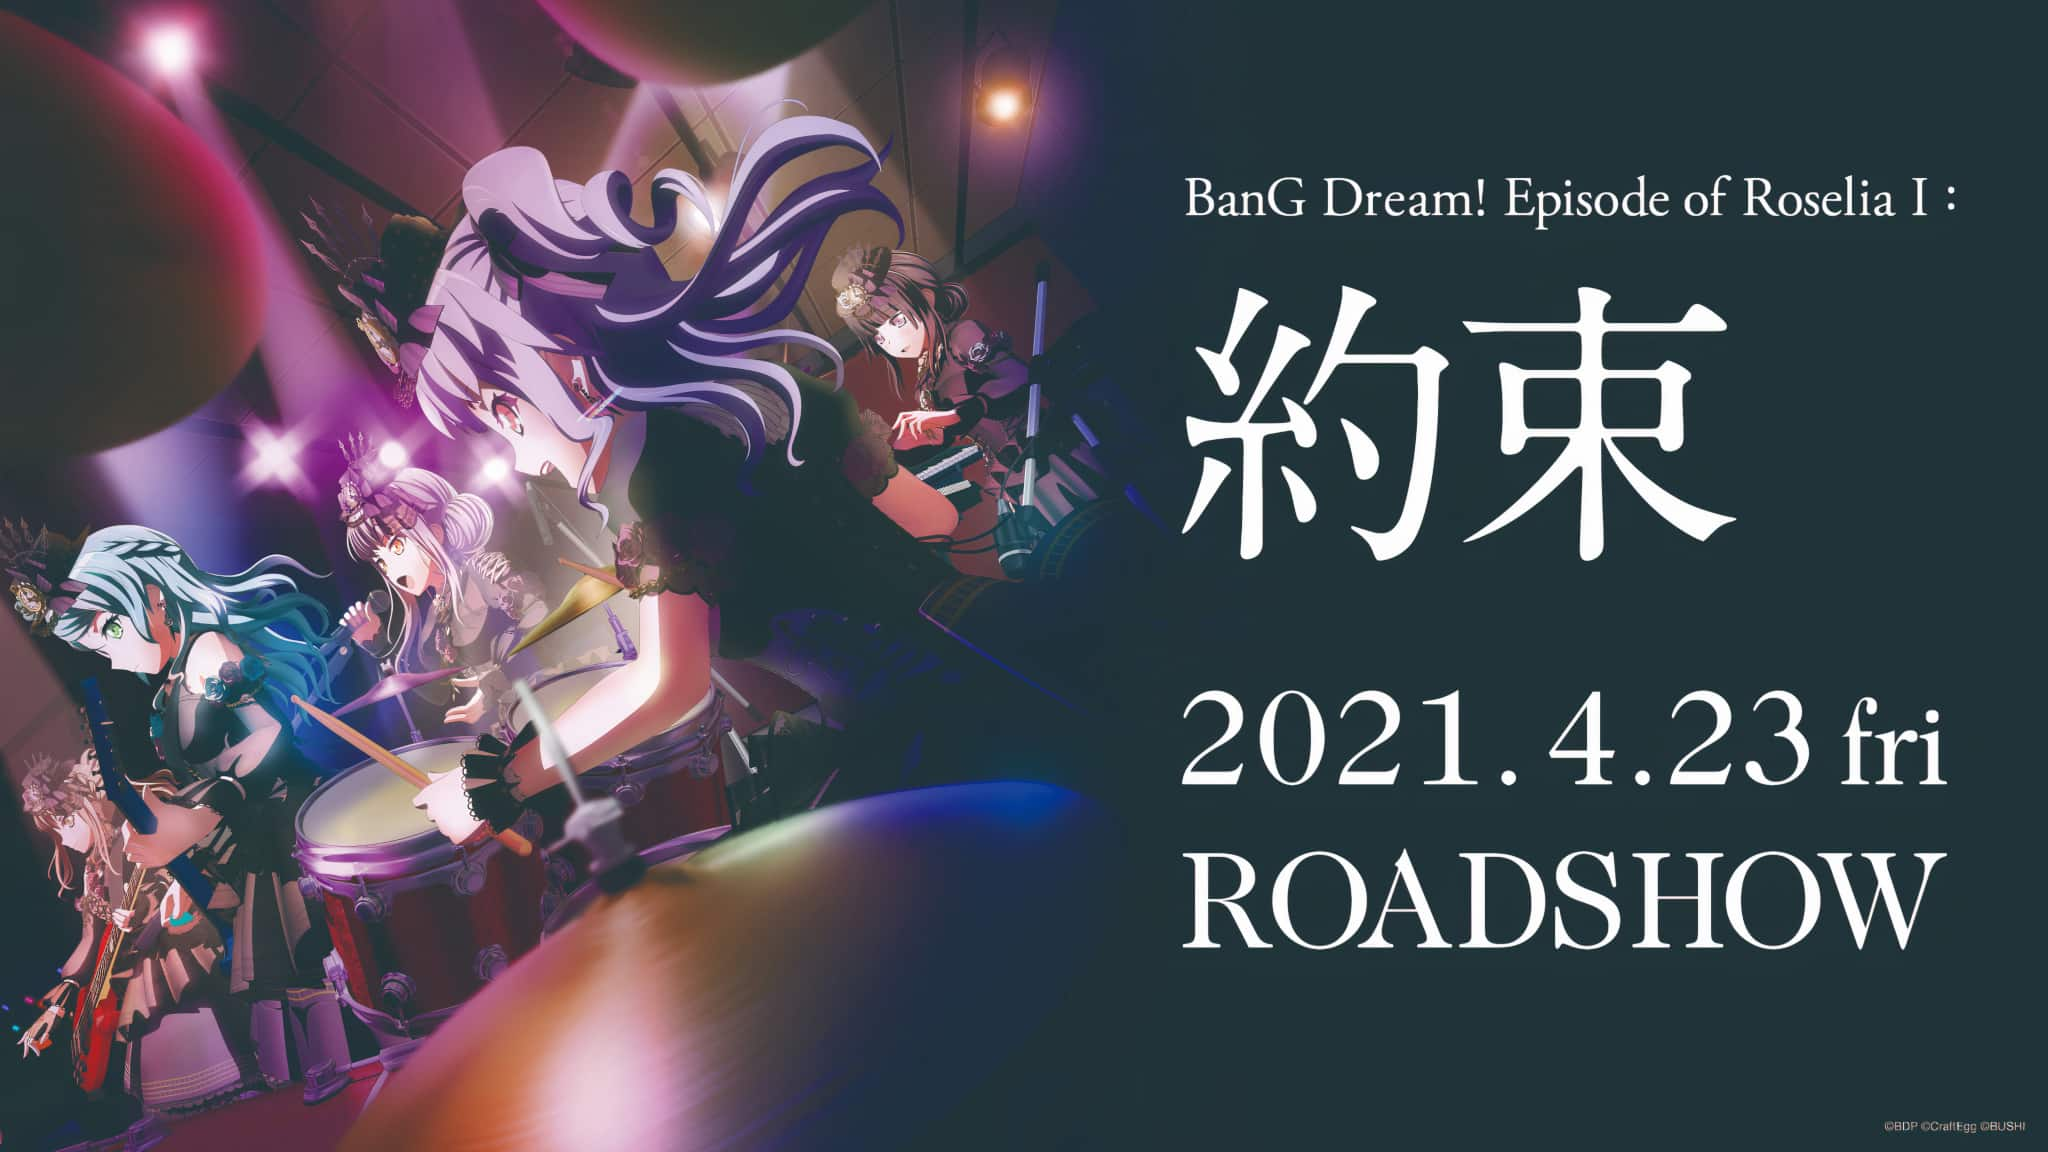 Visuel principal pour le film Bang Dream : Episode of Roselia 1 - Yakusoku